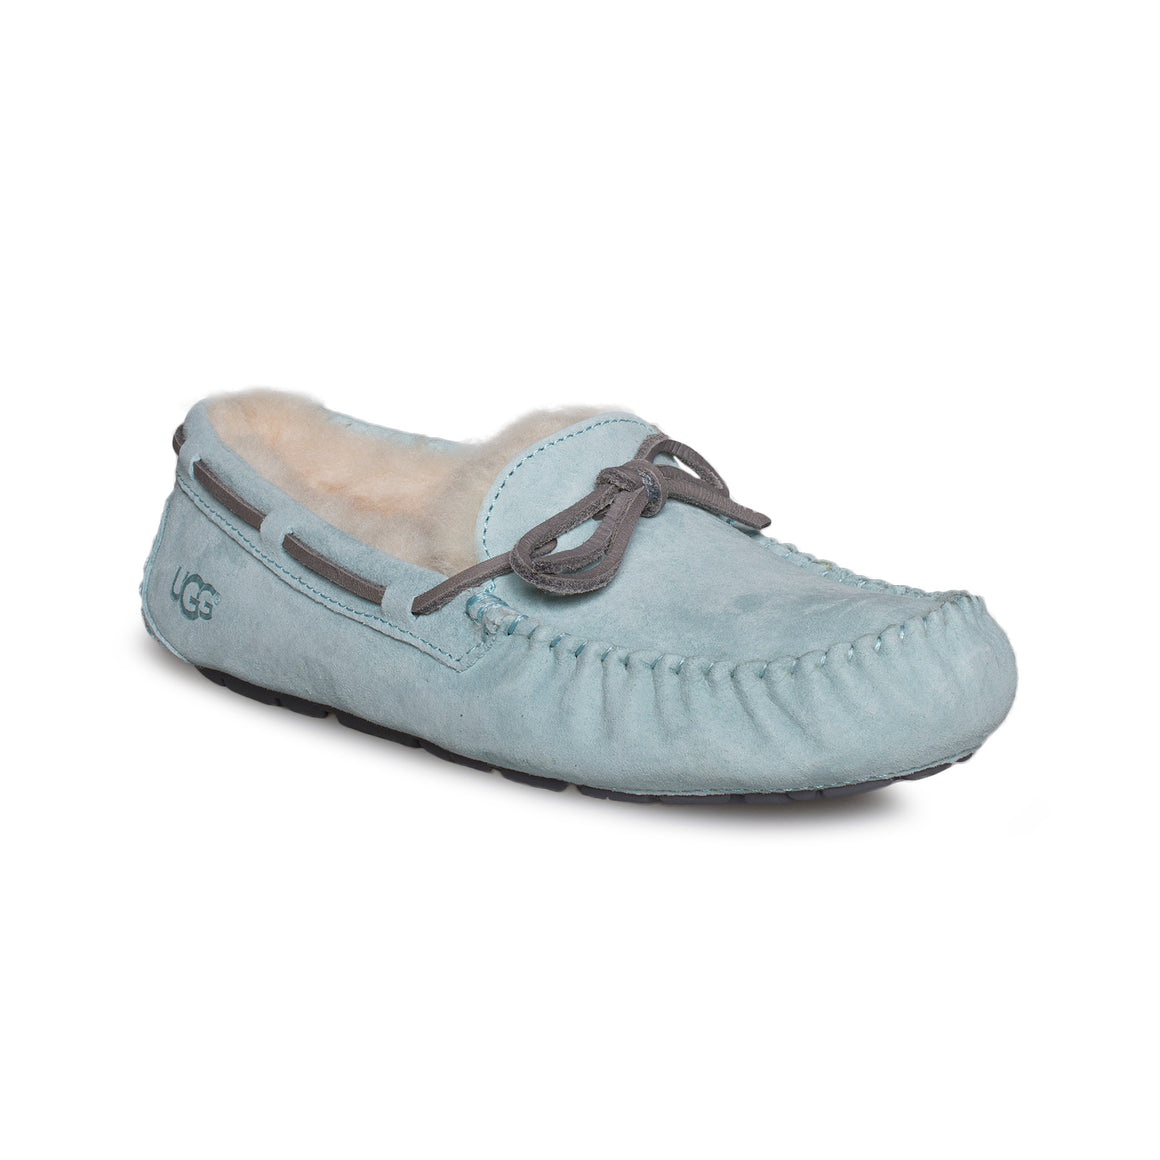 UGG Dakota Ether Slippers - Women's